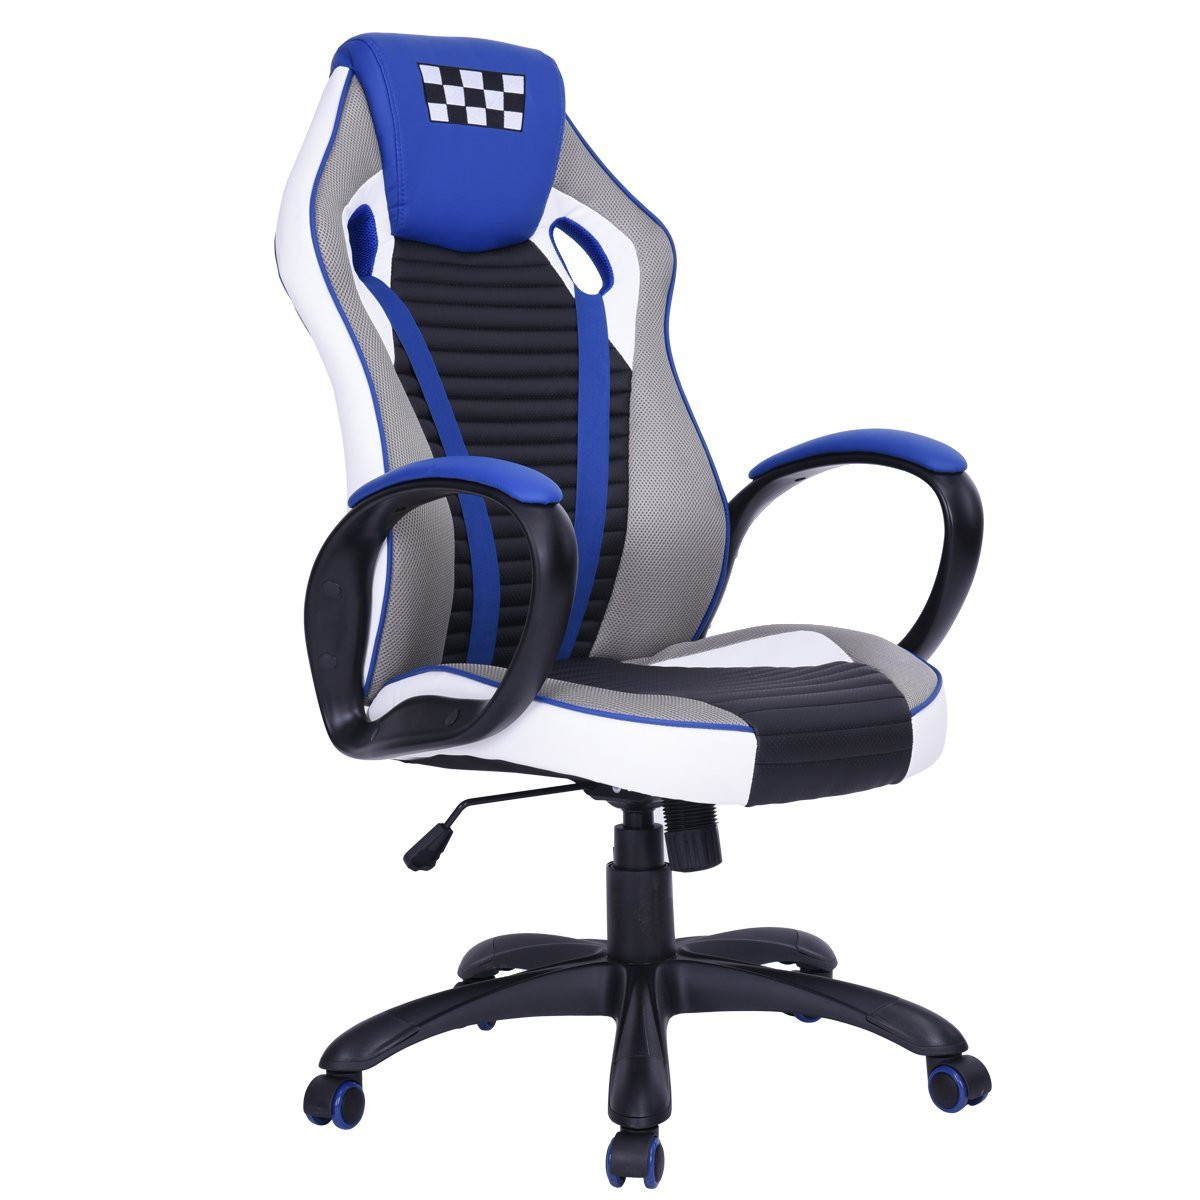 Best ideas about Best Gaming Chair Under 100 . Save or Pin 10 Cheap Gaming Chairs – Under $100 Gaming Chair Pro Now.